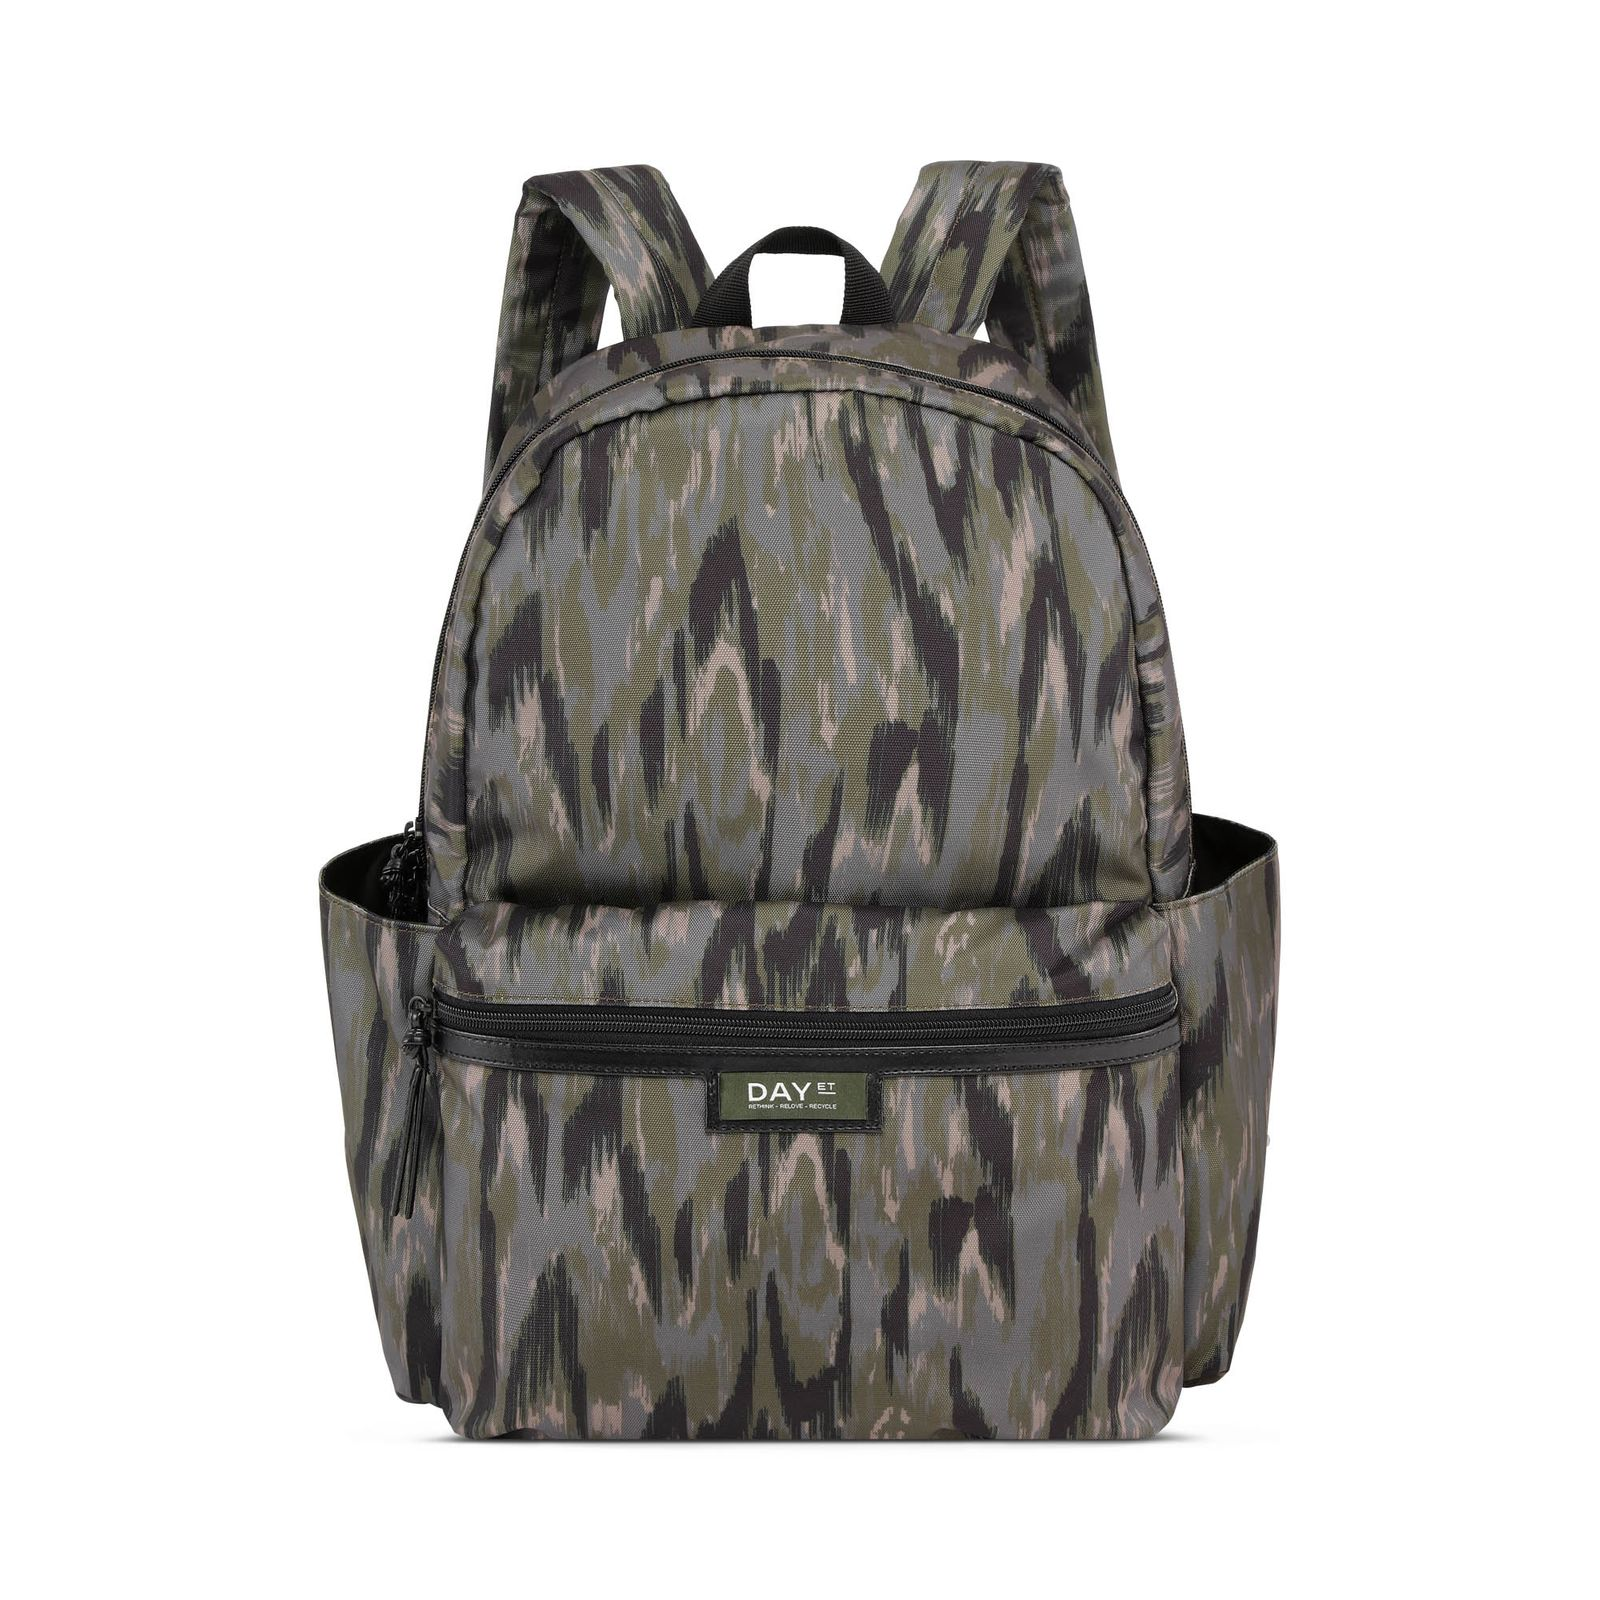 DAY ET Gweneth Re-P Marble Backpack Lead